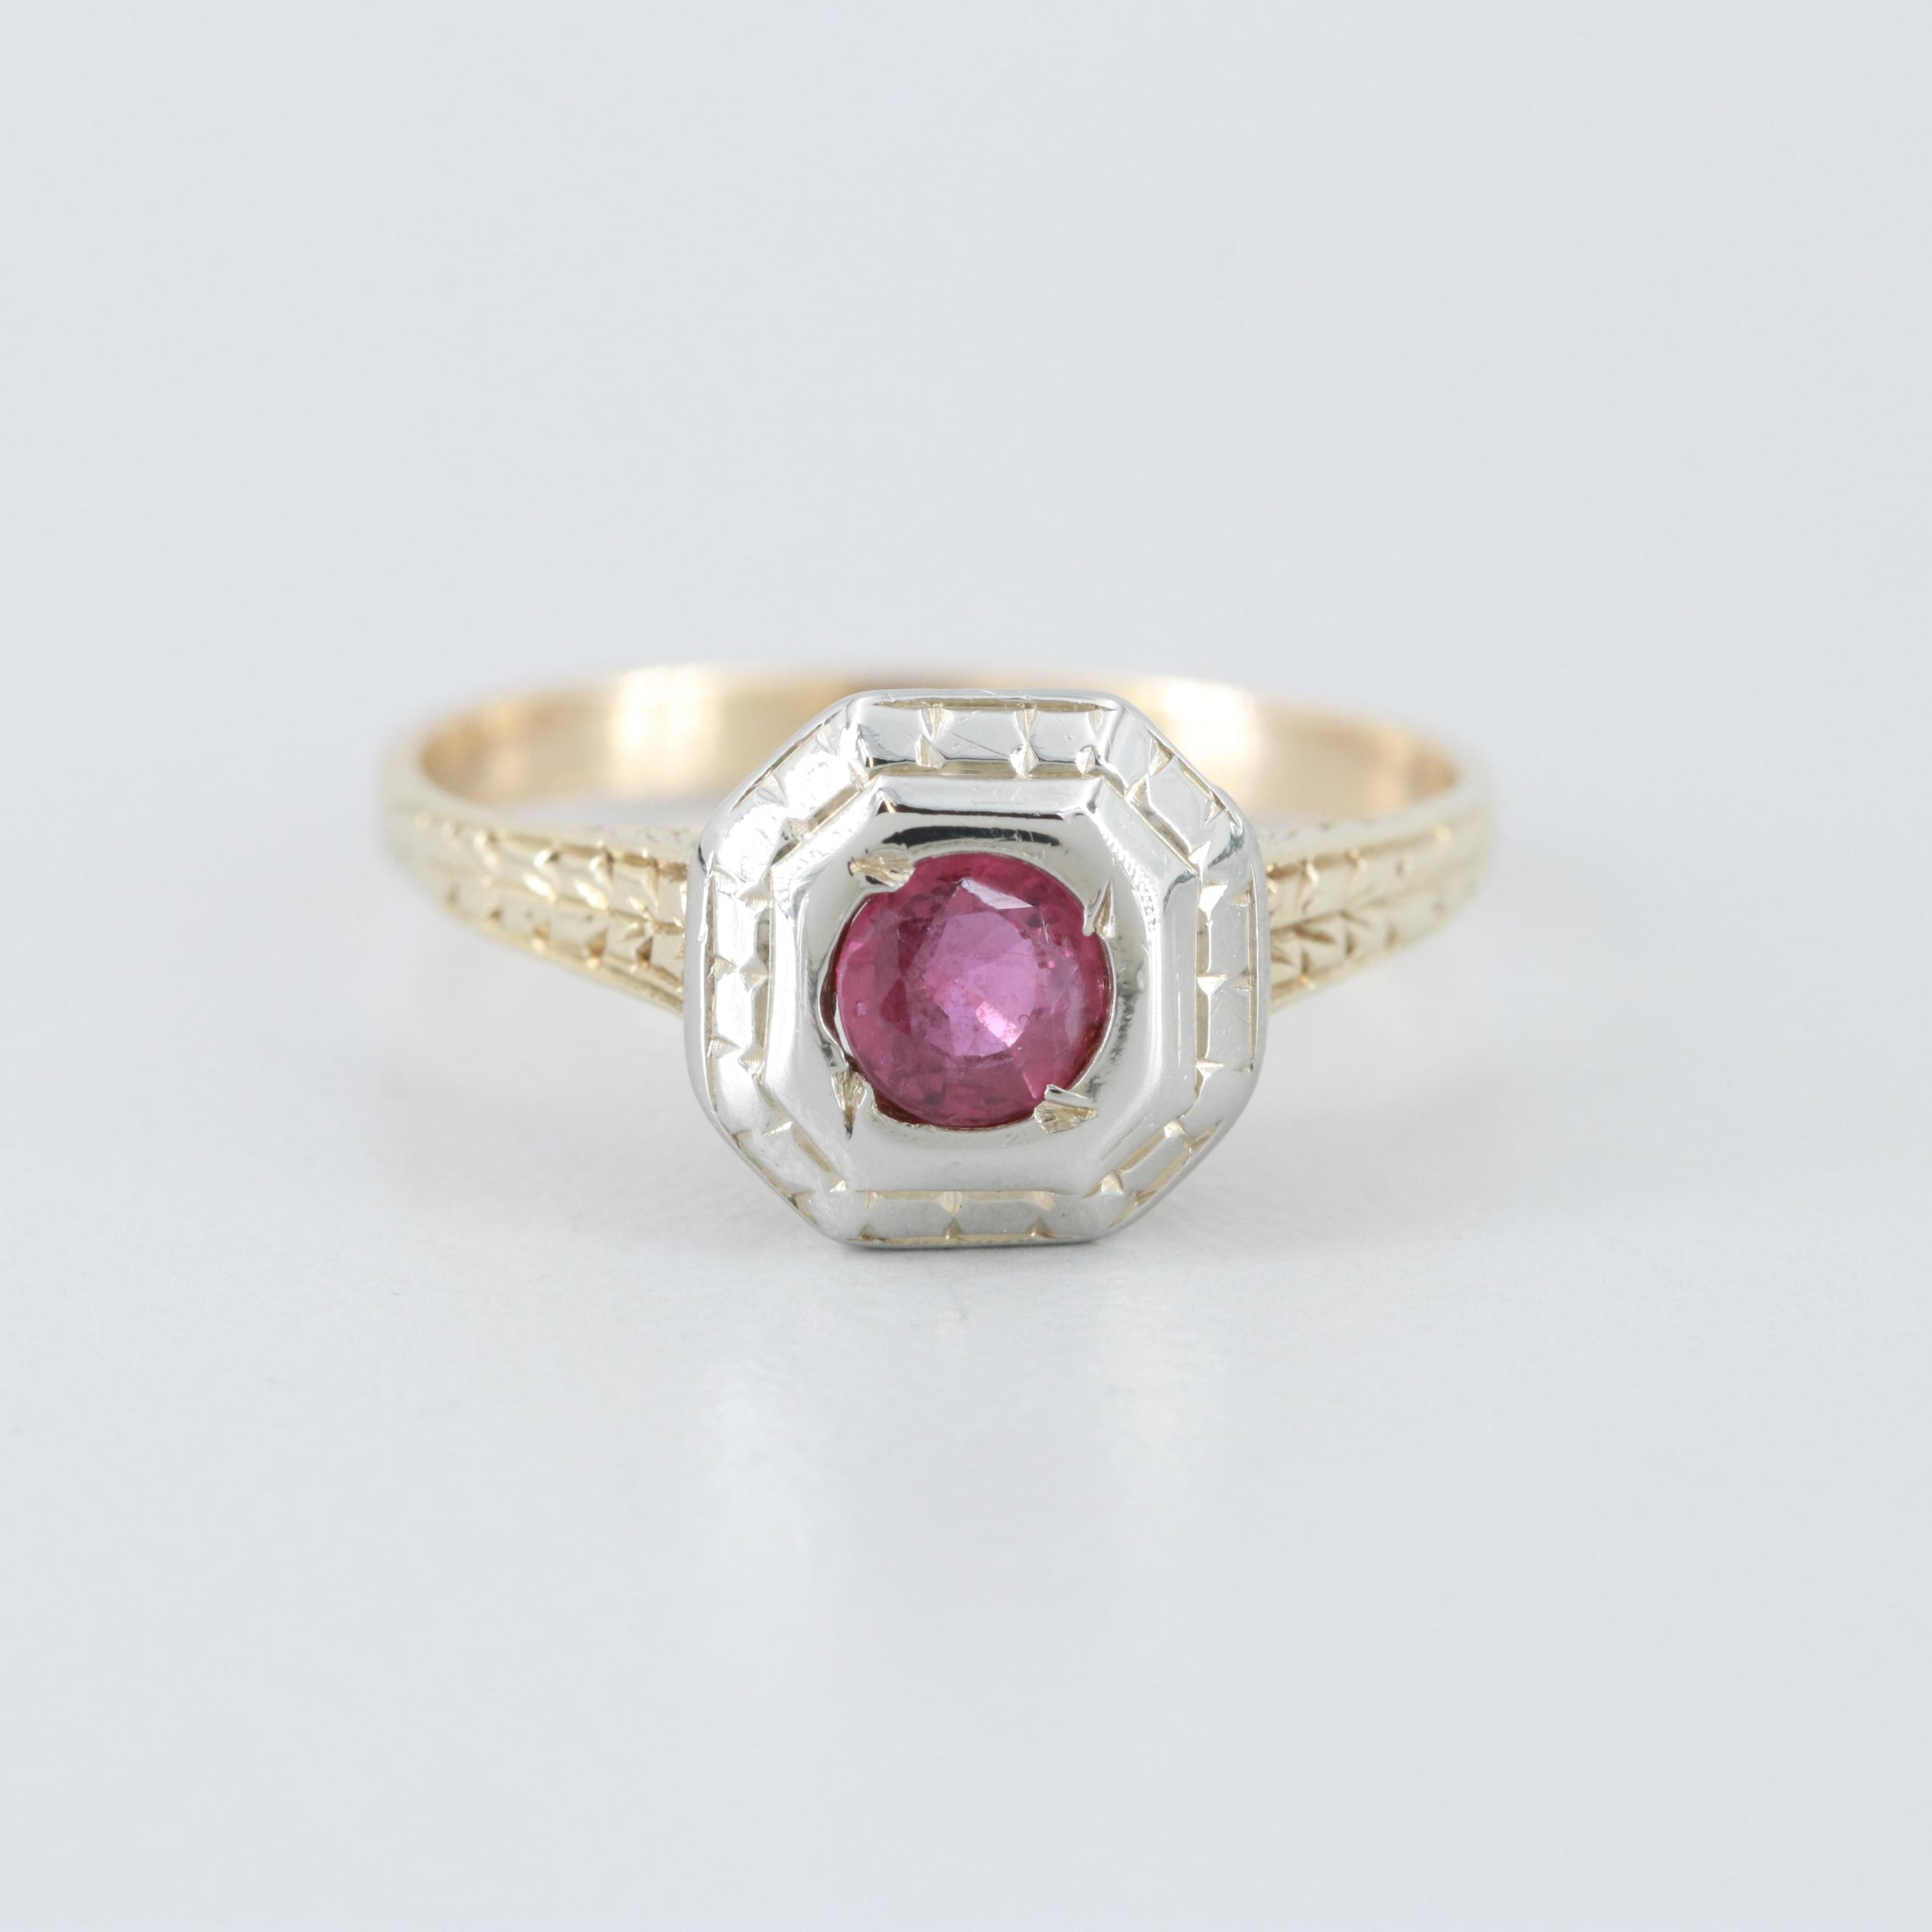 Art Deco 14K Yellow Gold Ruby Ring with 18K White Gold Accents